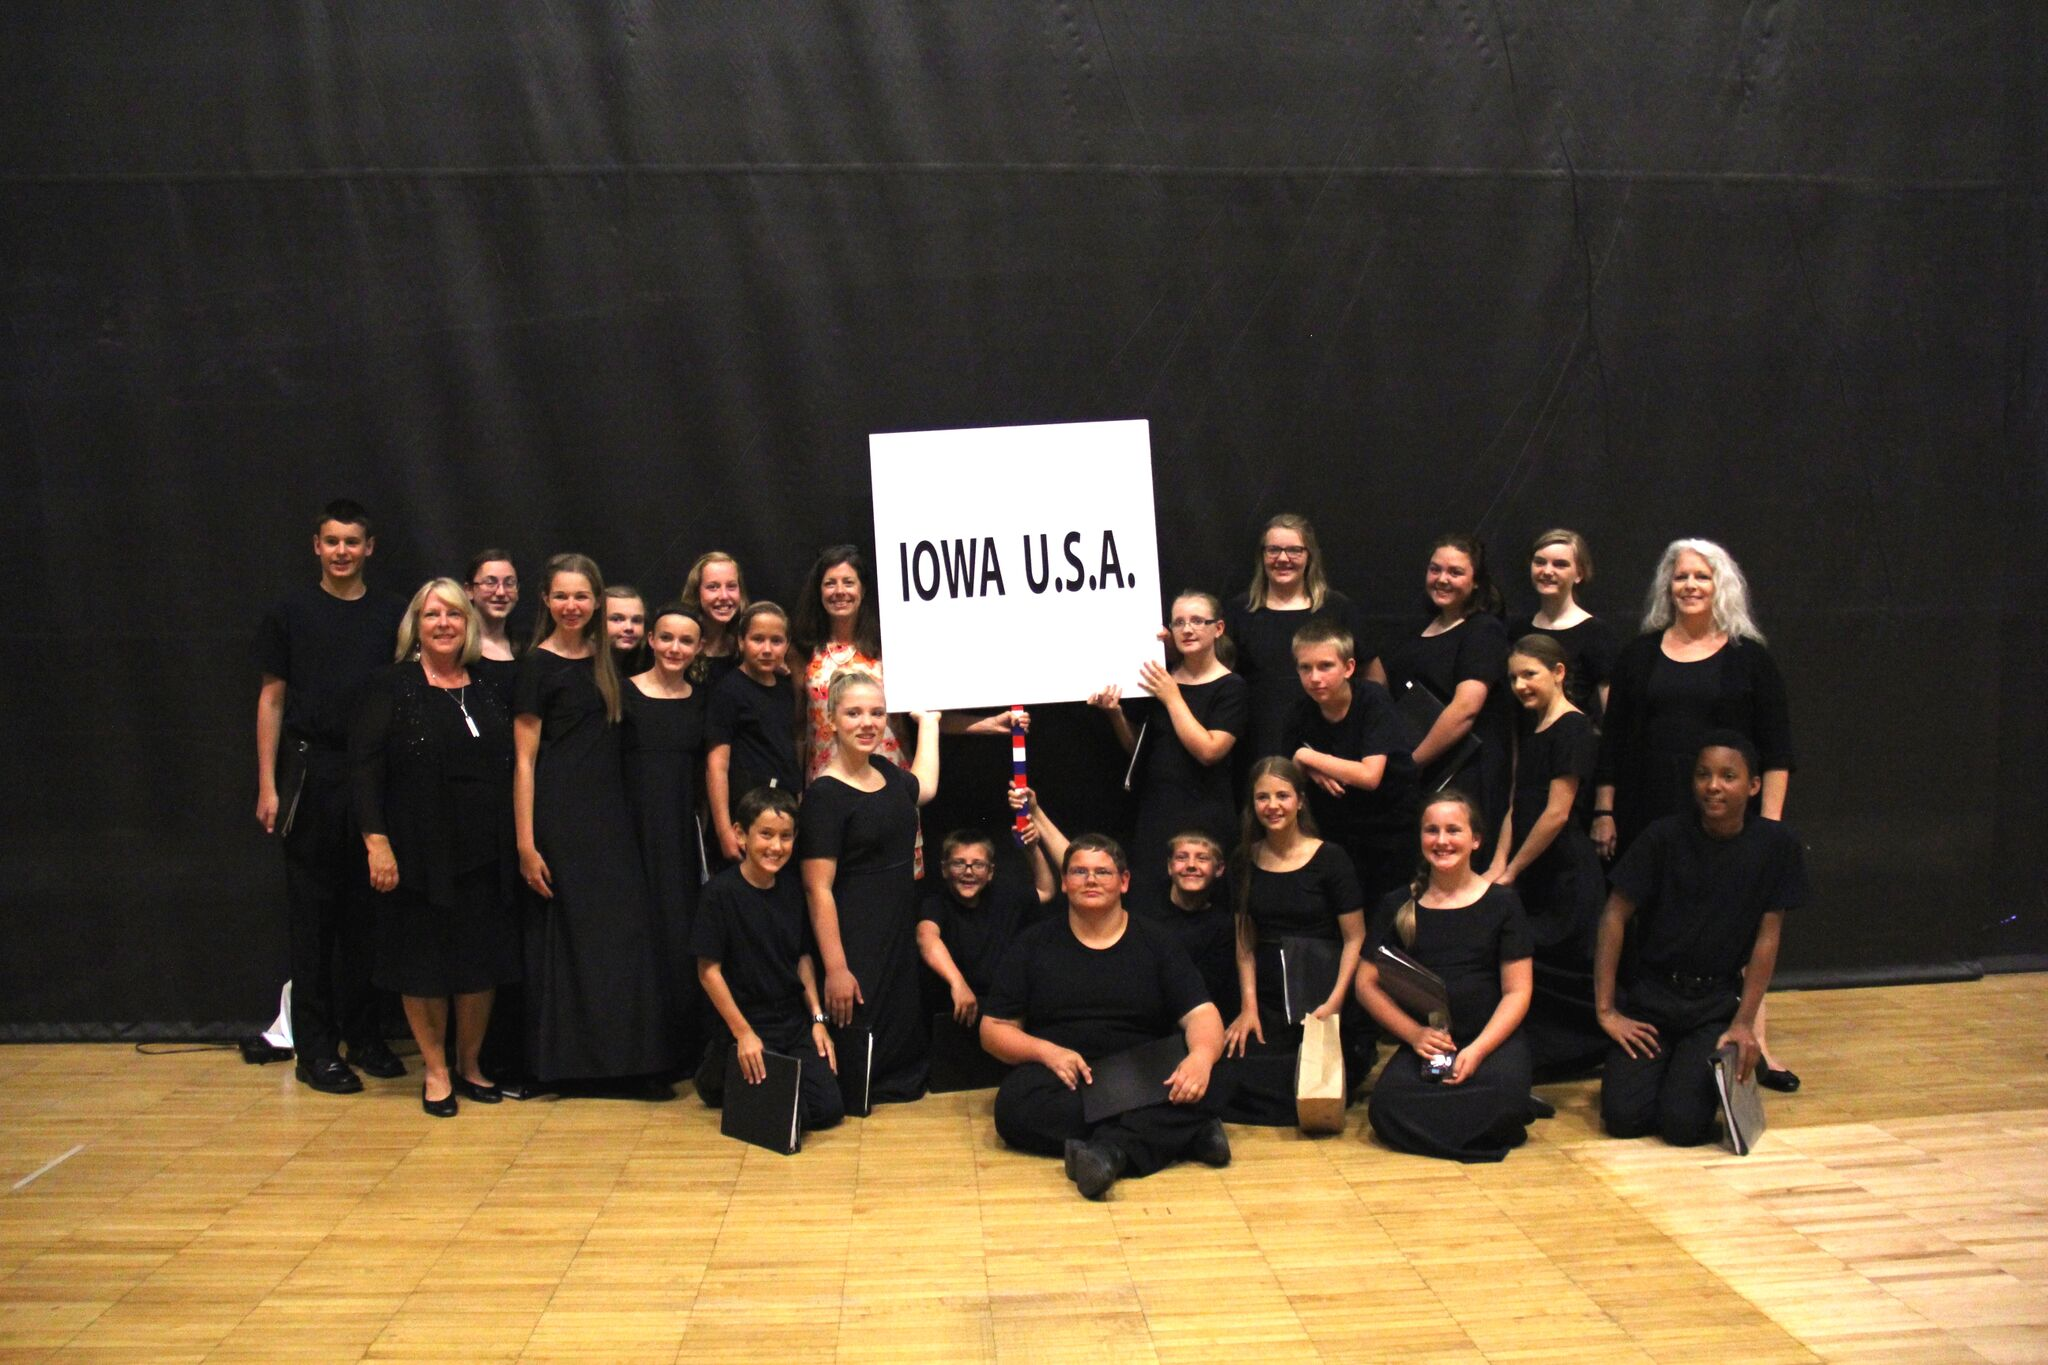 Heartland Youth Choir representing Iowa at the International Choral Festival in Missoula, Montana, in the summer of 2016.